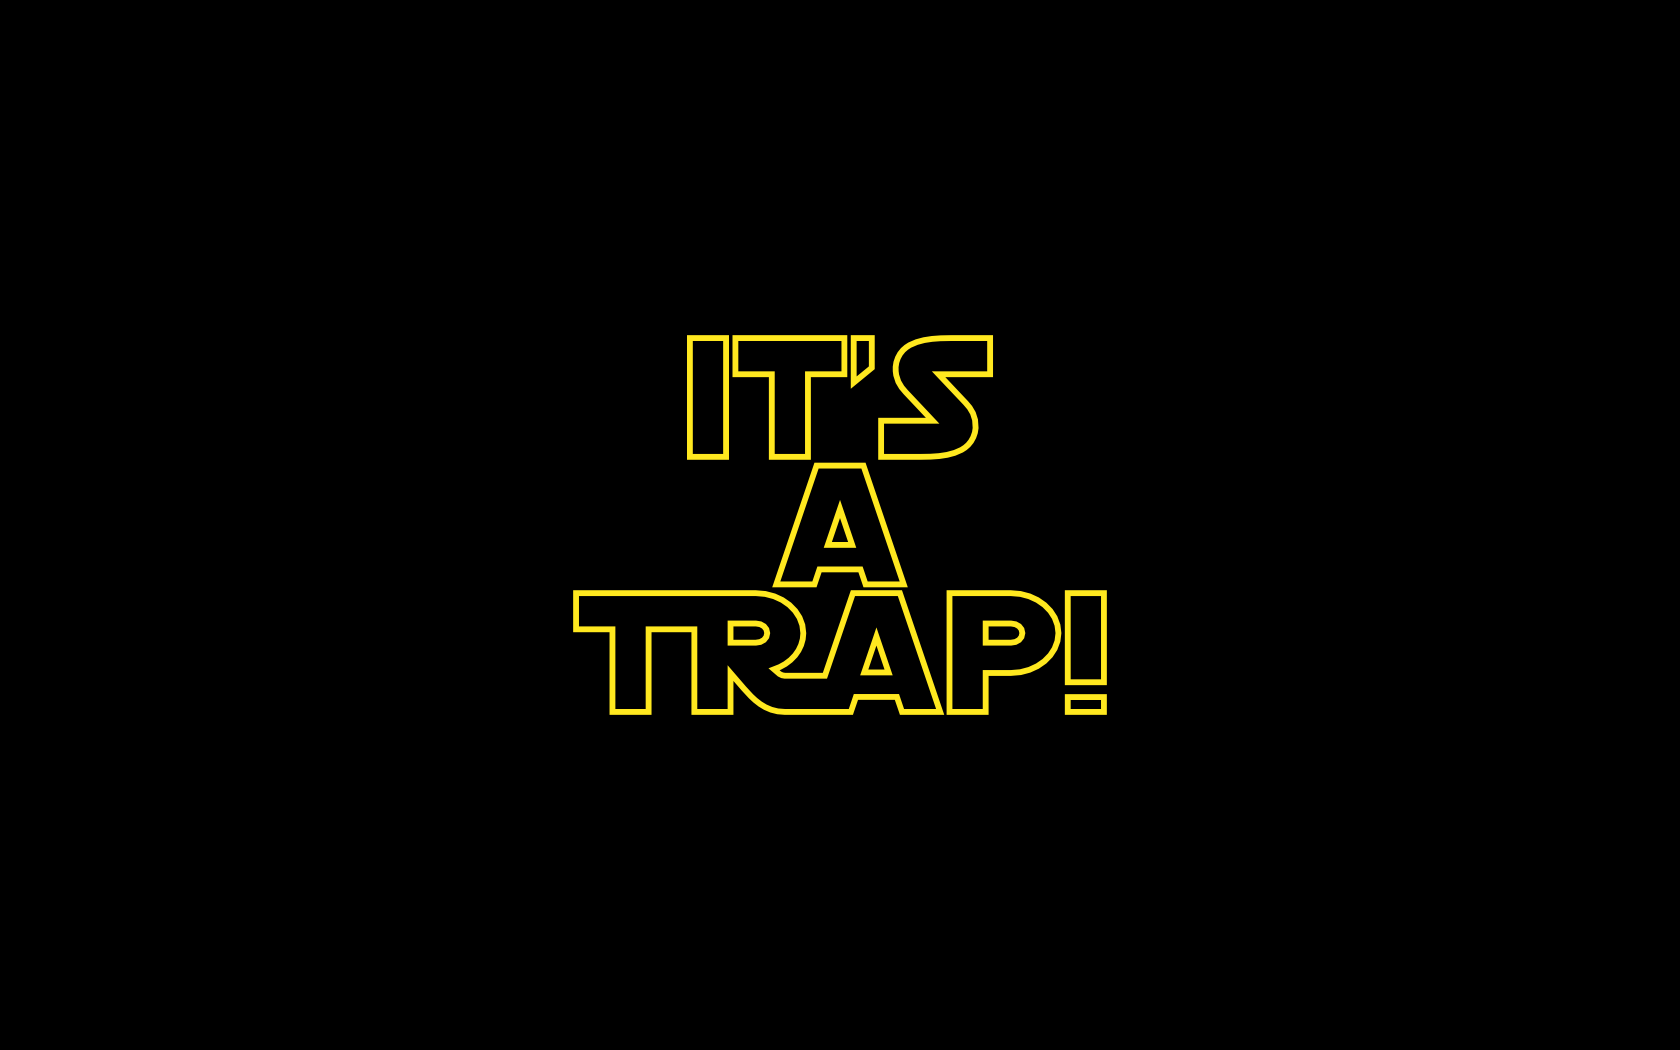 Its A Trap Wallpaper It s a trap by chrono-strifeIts A Trap Wallpaper